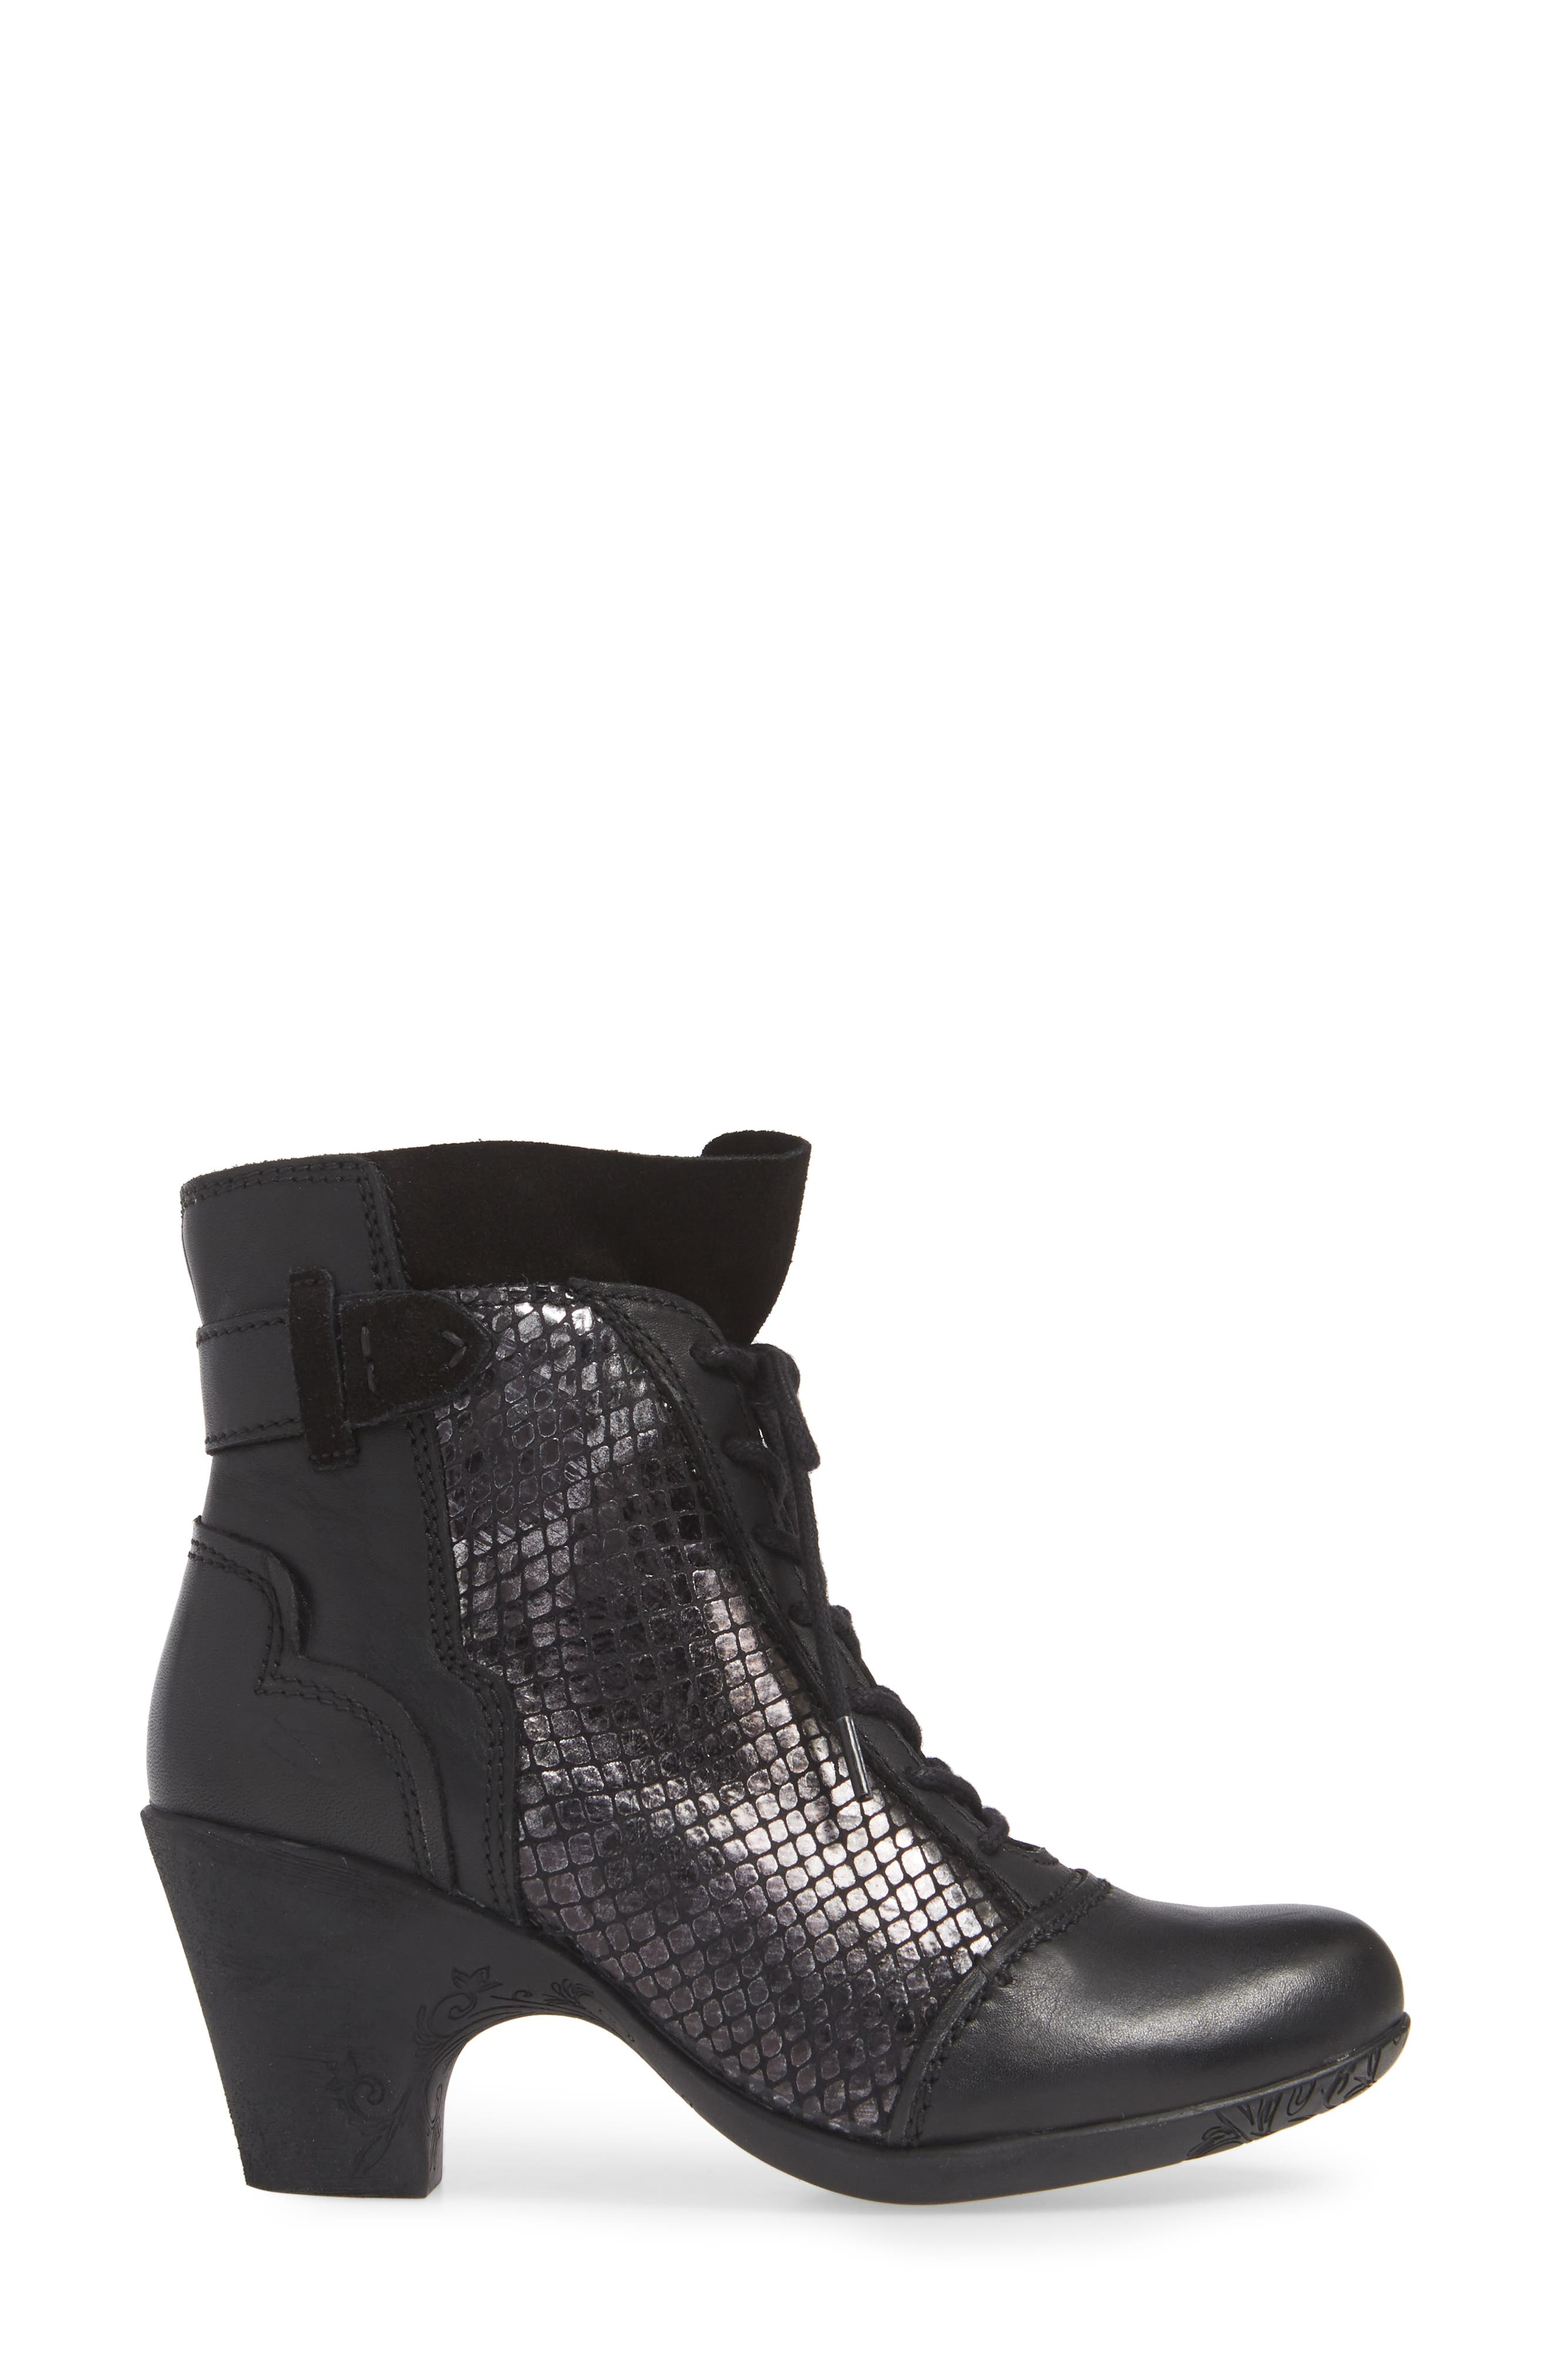 'Jesse' Lace-Up Bootie,                             Alternate thumbnail 3, color,                             BLACK TAIPAN LEATHER